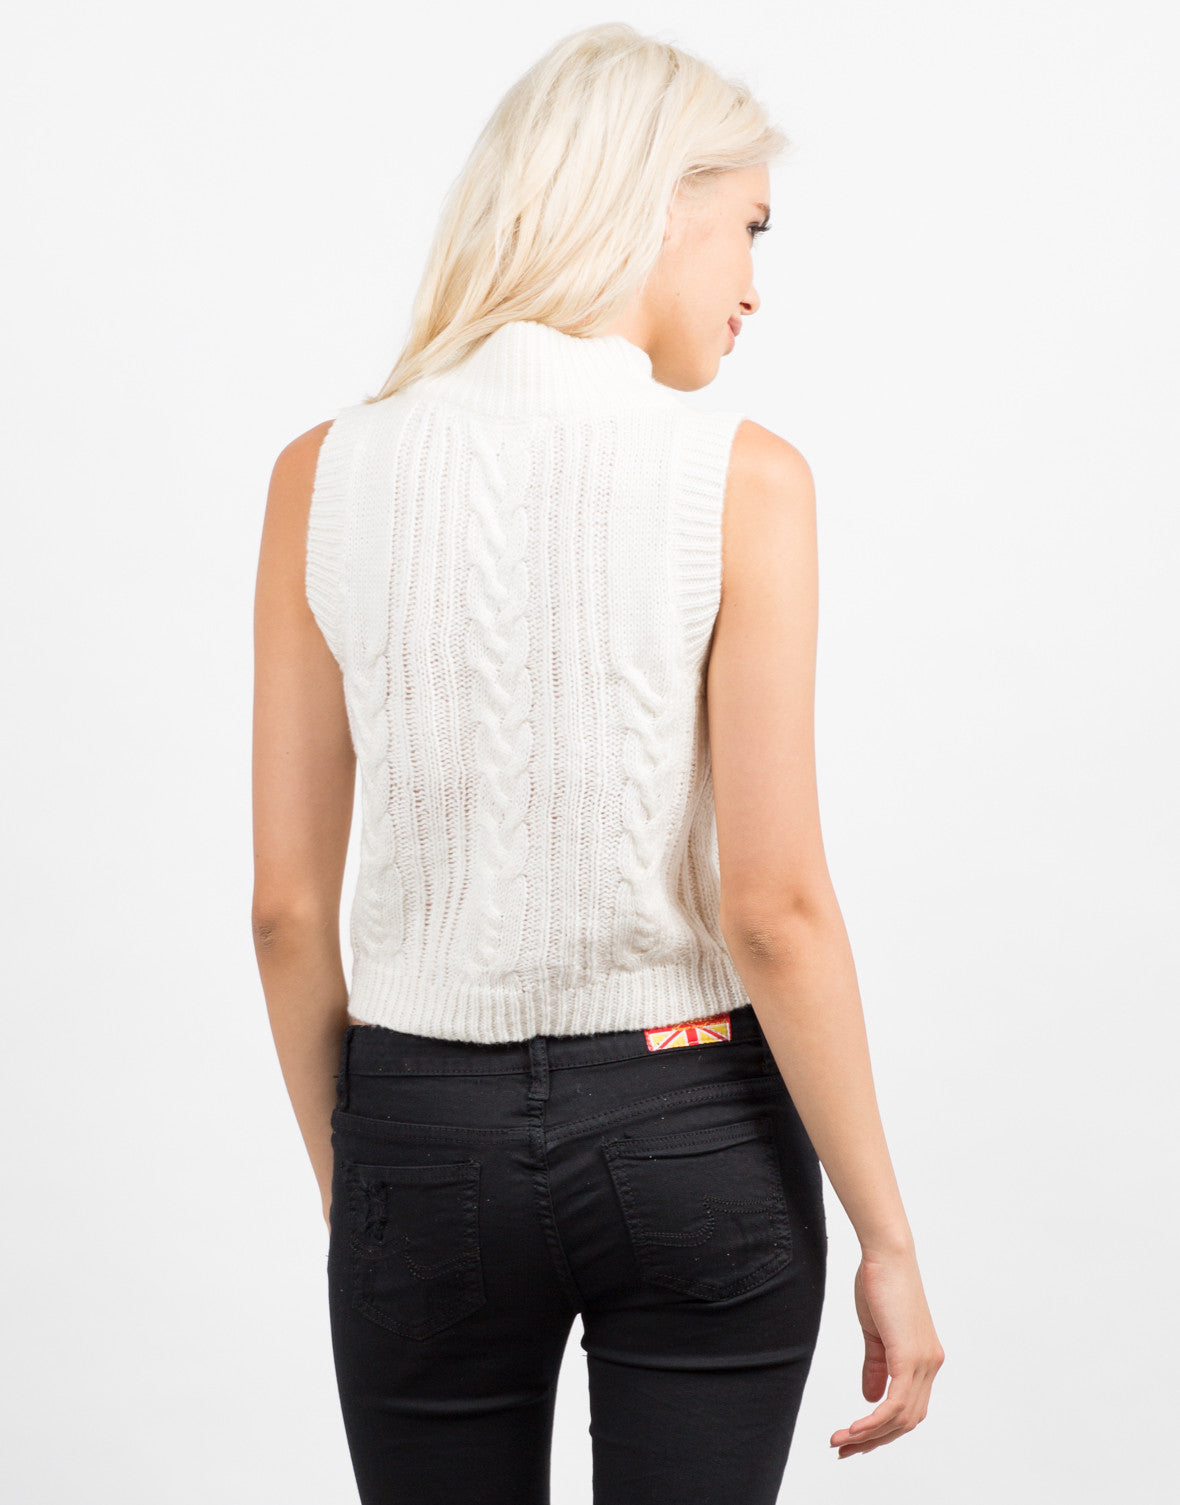 Back View of Sleeveless Turtleneck Sweater